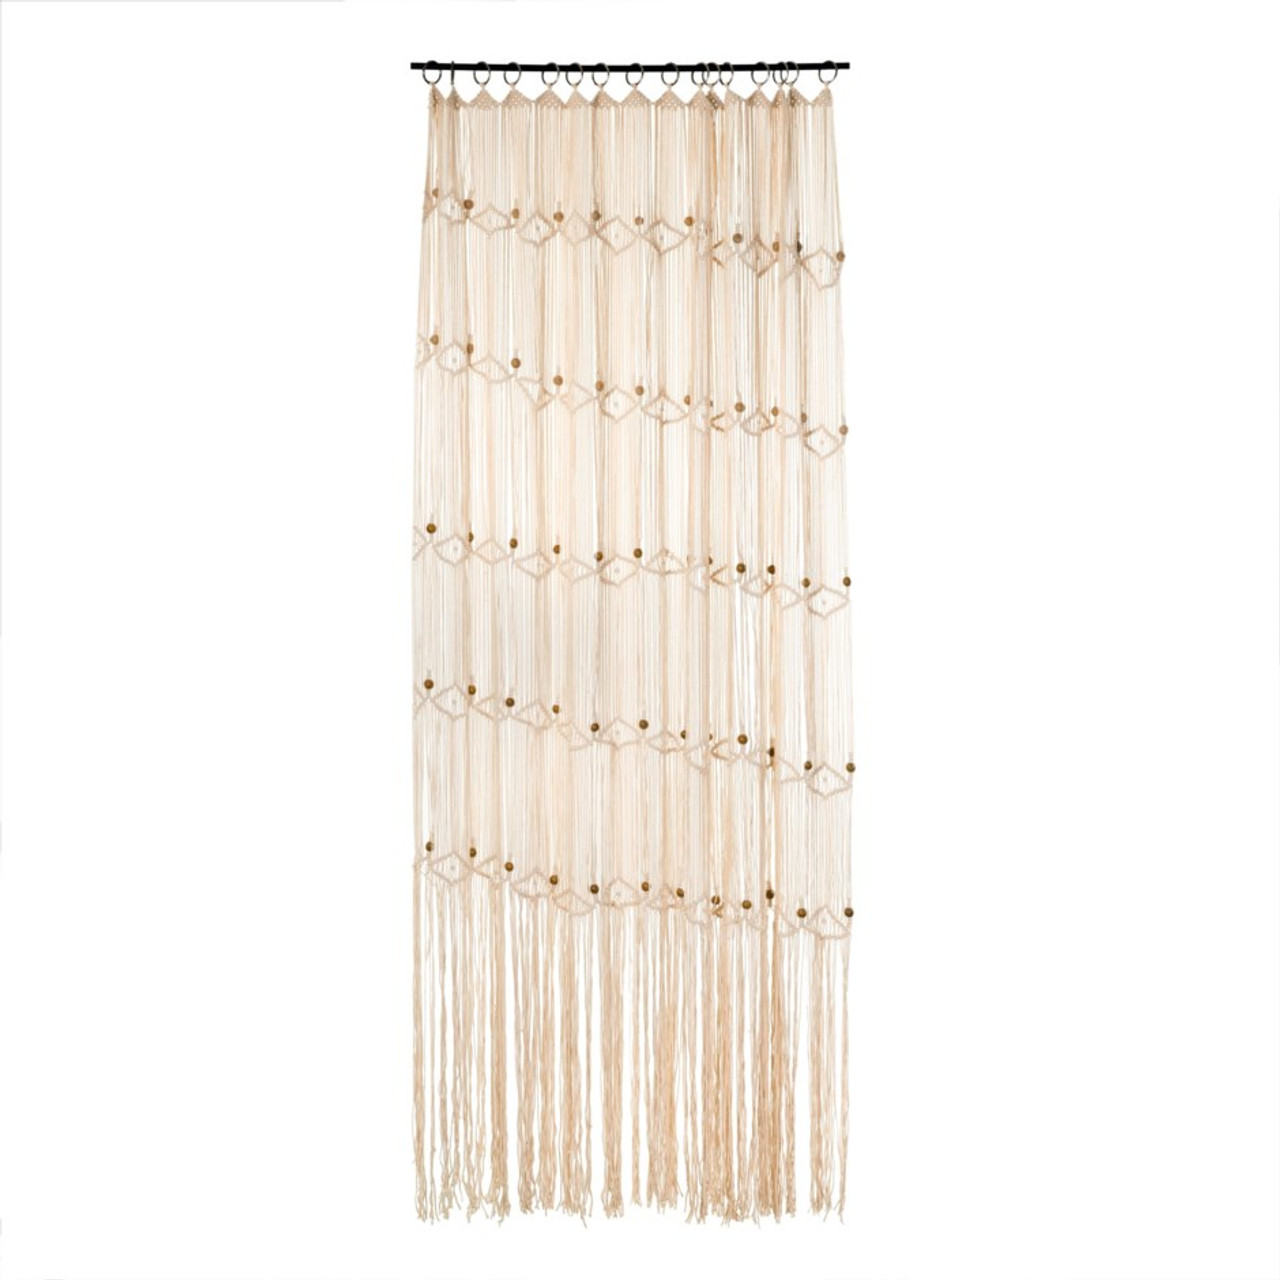 HAND KNITTED CURTAIN